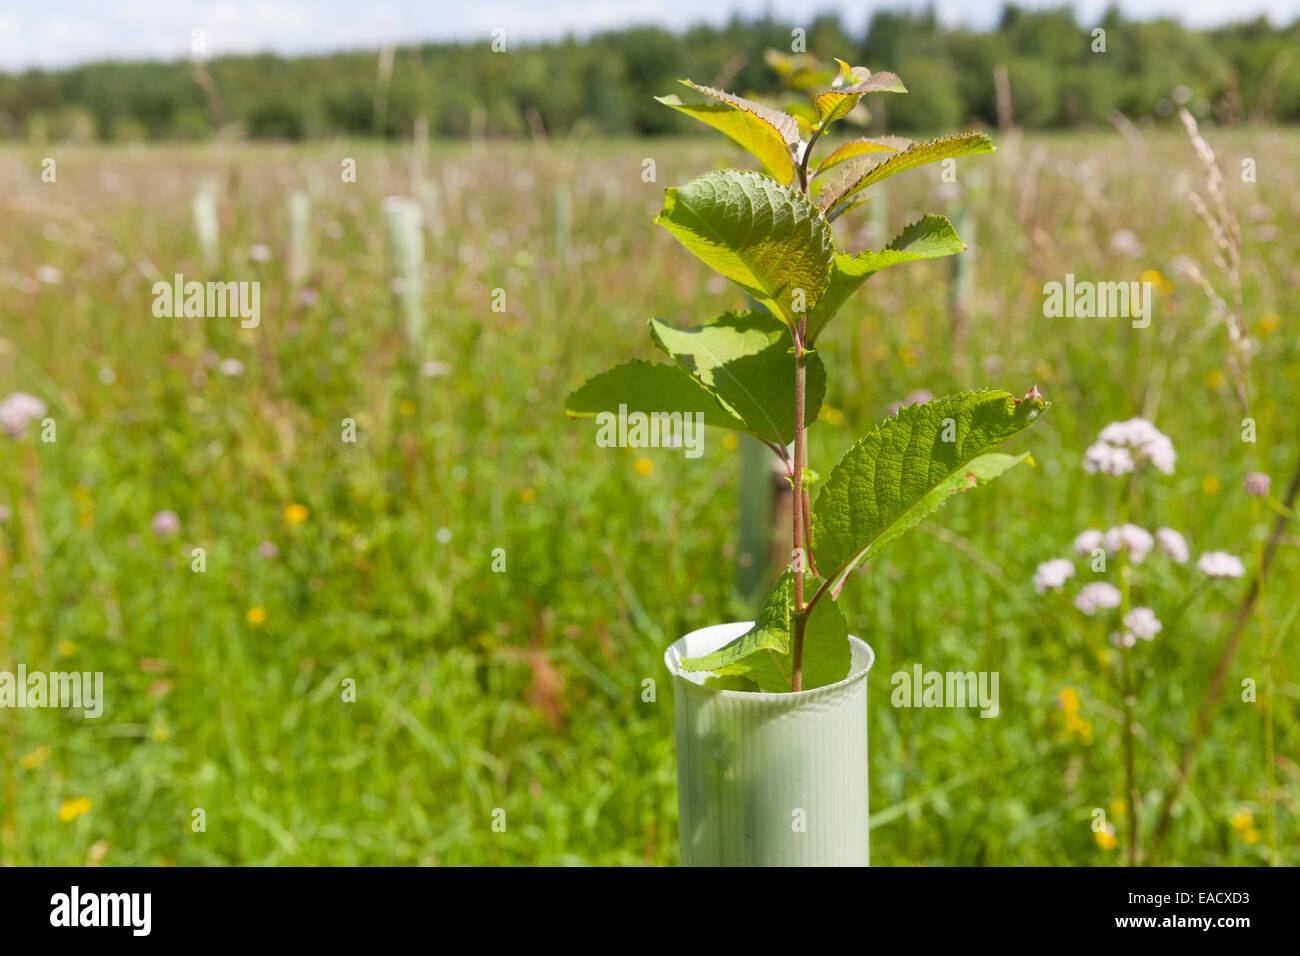 Tree planting for flood risk reduction in the River Eden catchment - Stock Image